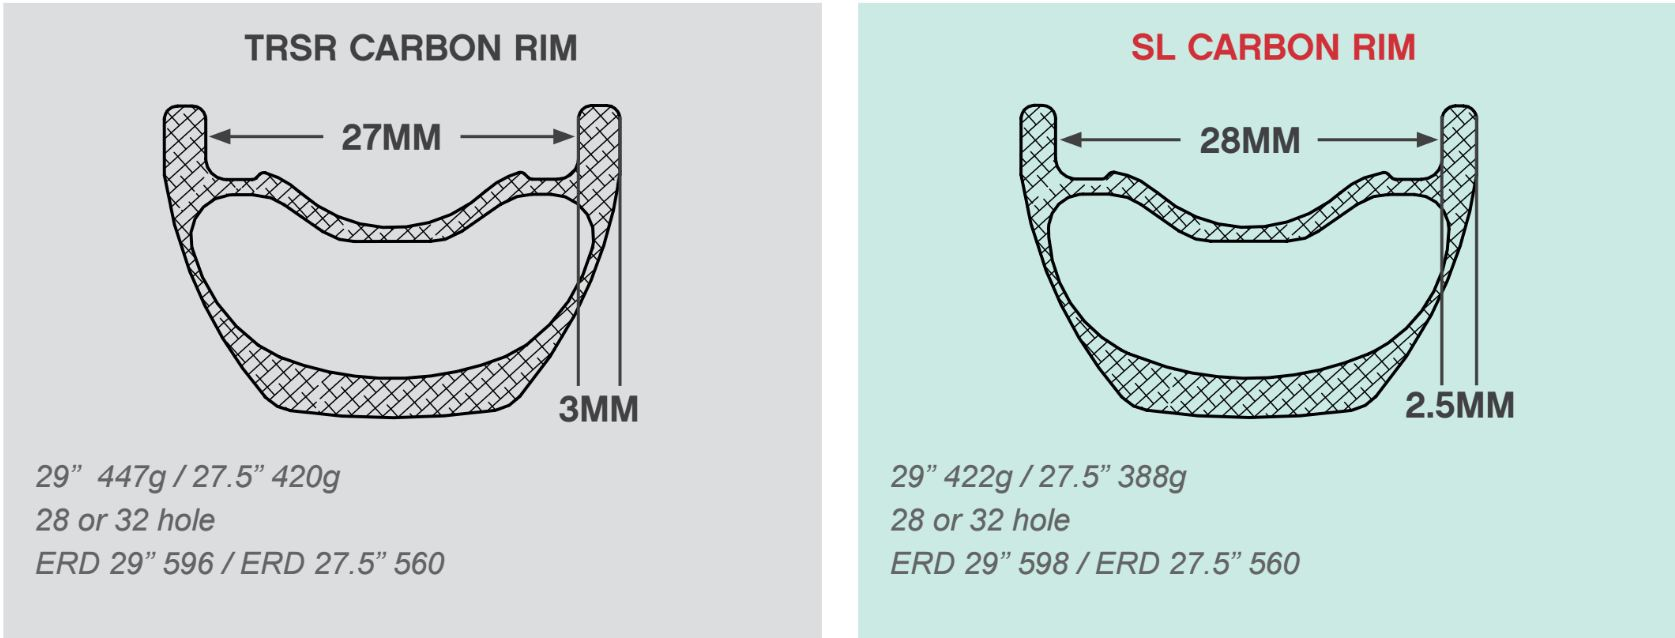 THE TRSR and SL rim share a similar profile.